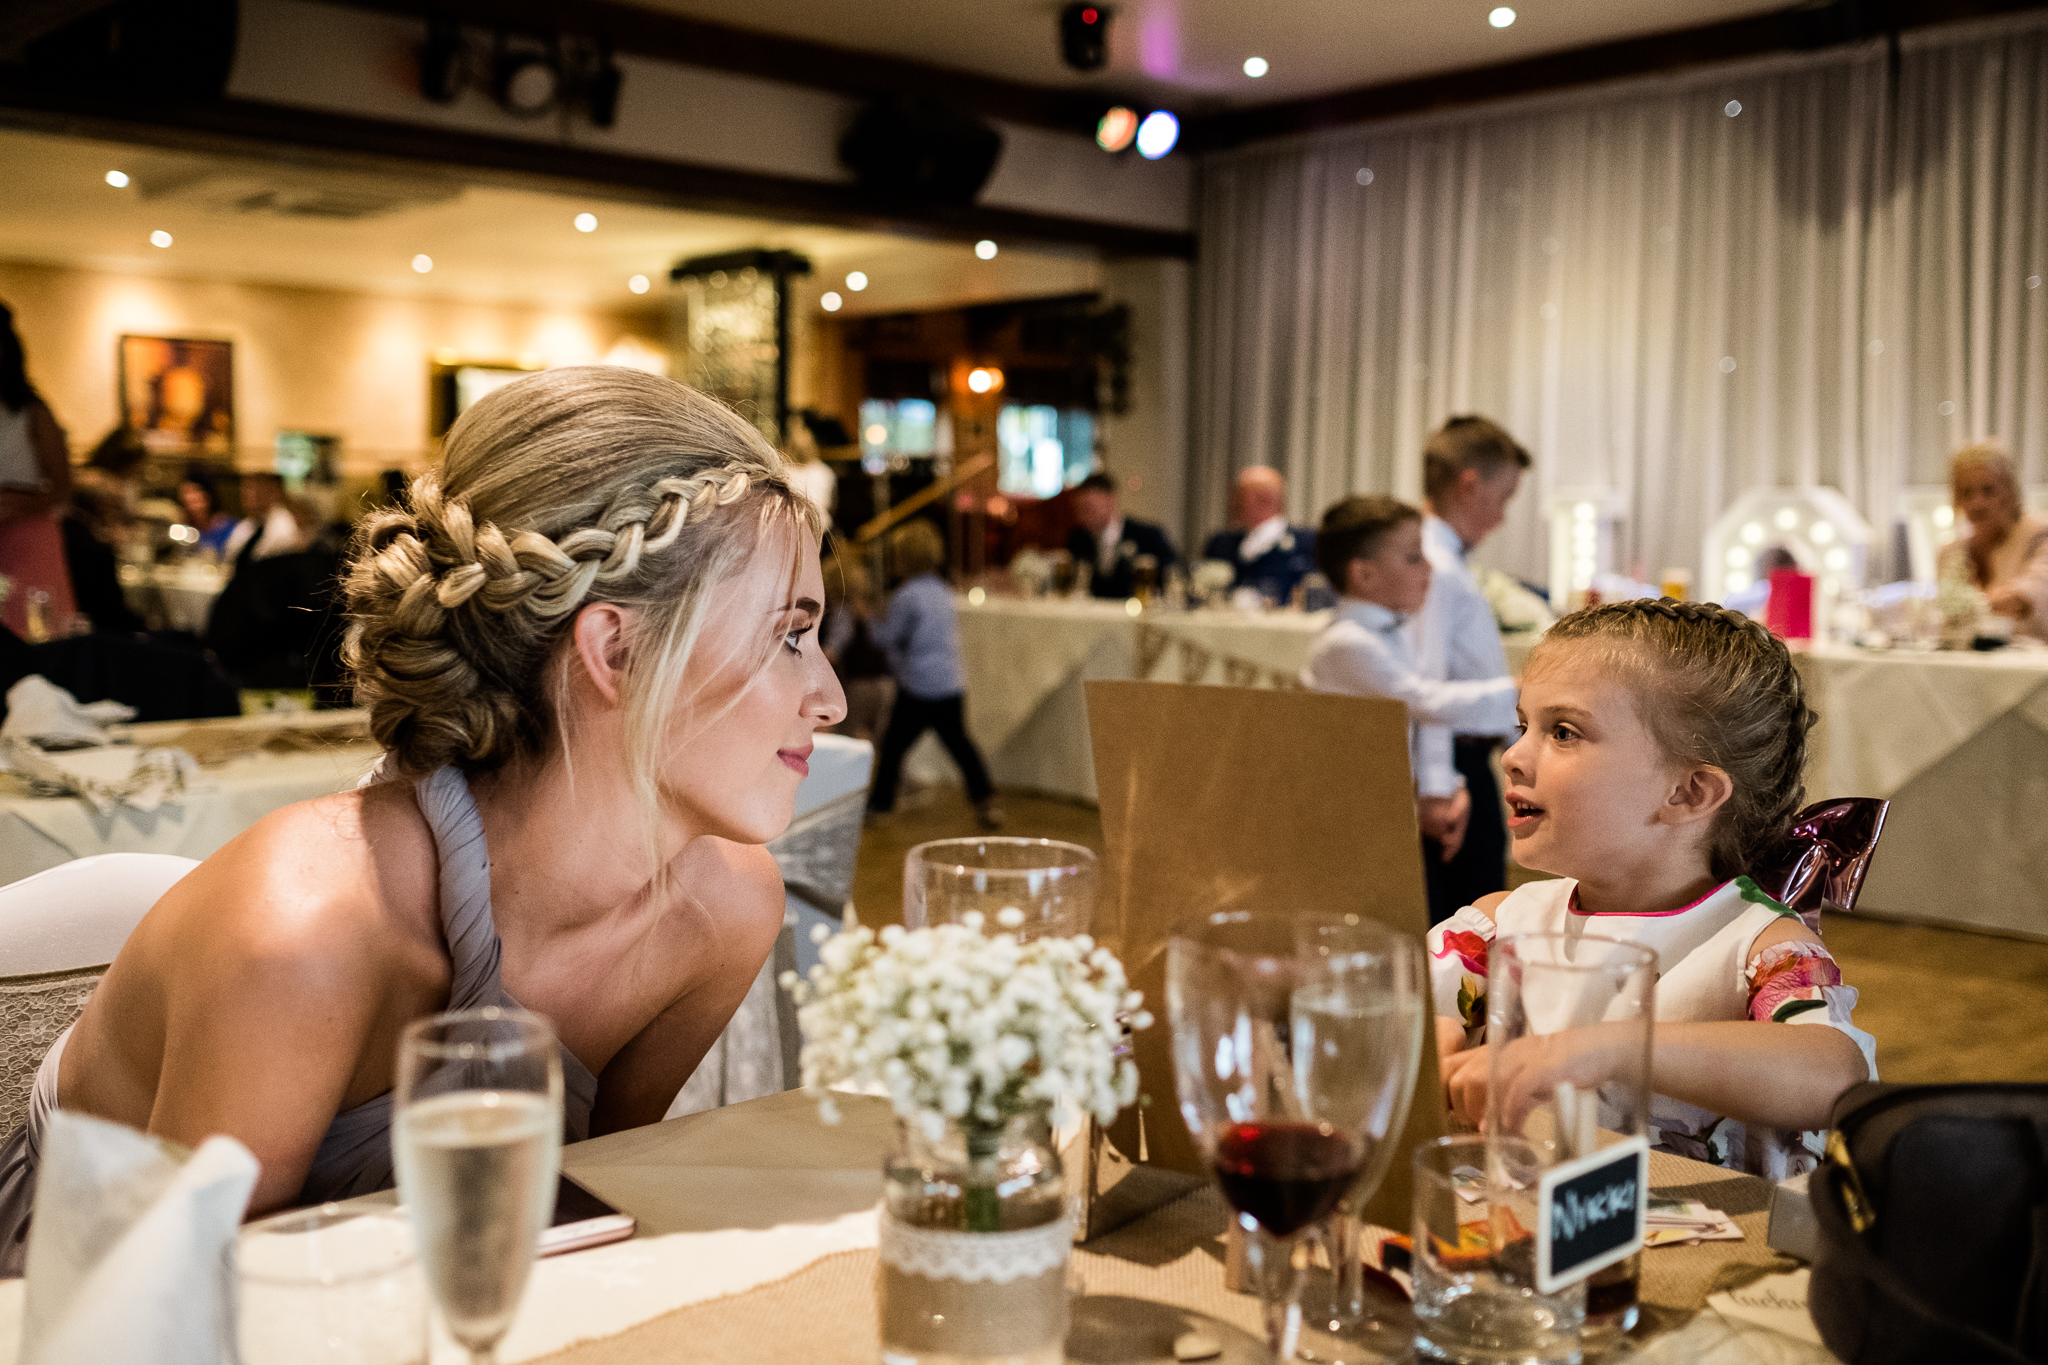 Staffordshire Moorlands Documentary Wedding Photography at The Three Horseshoes, Blackshaw Moor - Jenny Harper-27.jpg